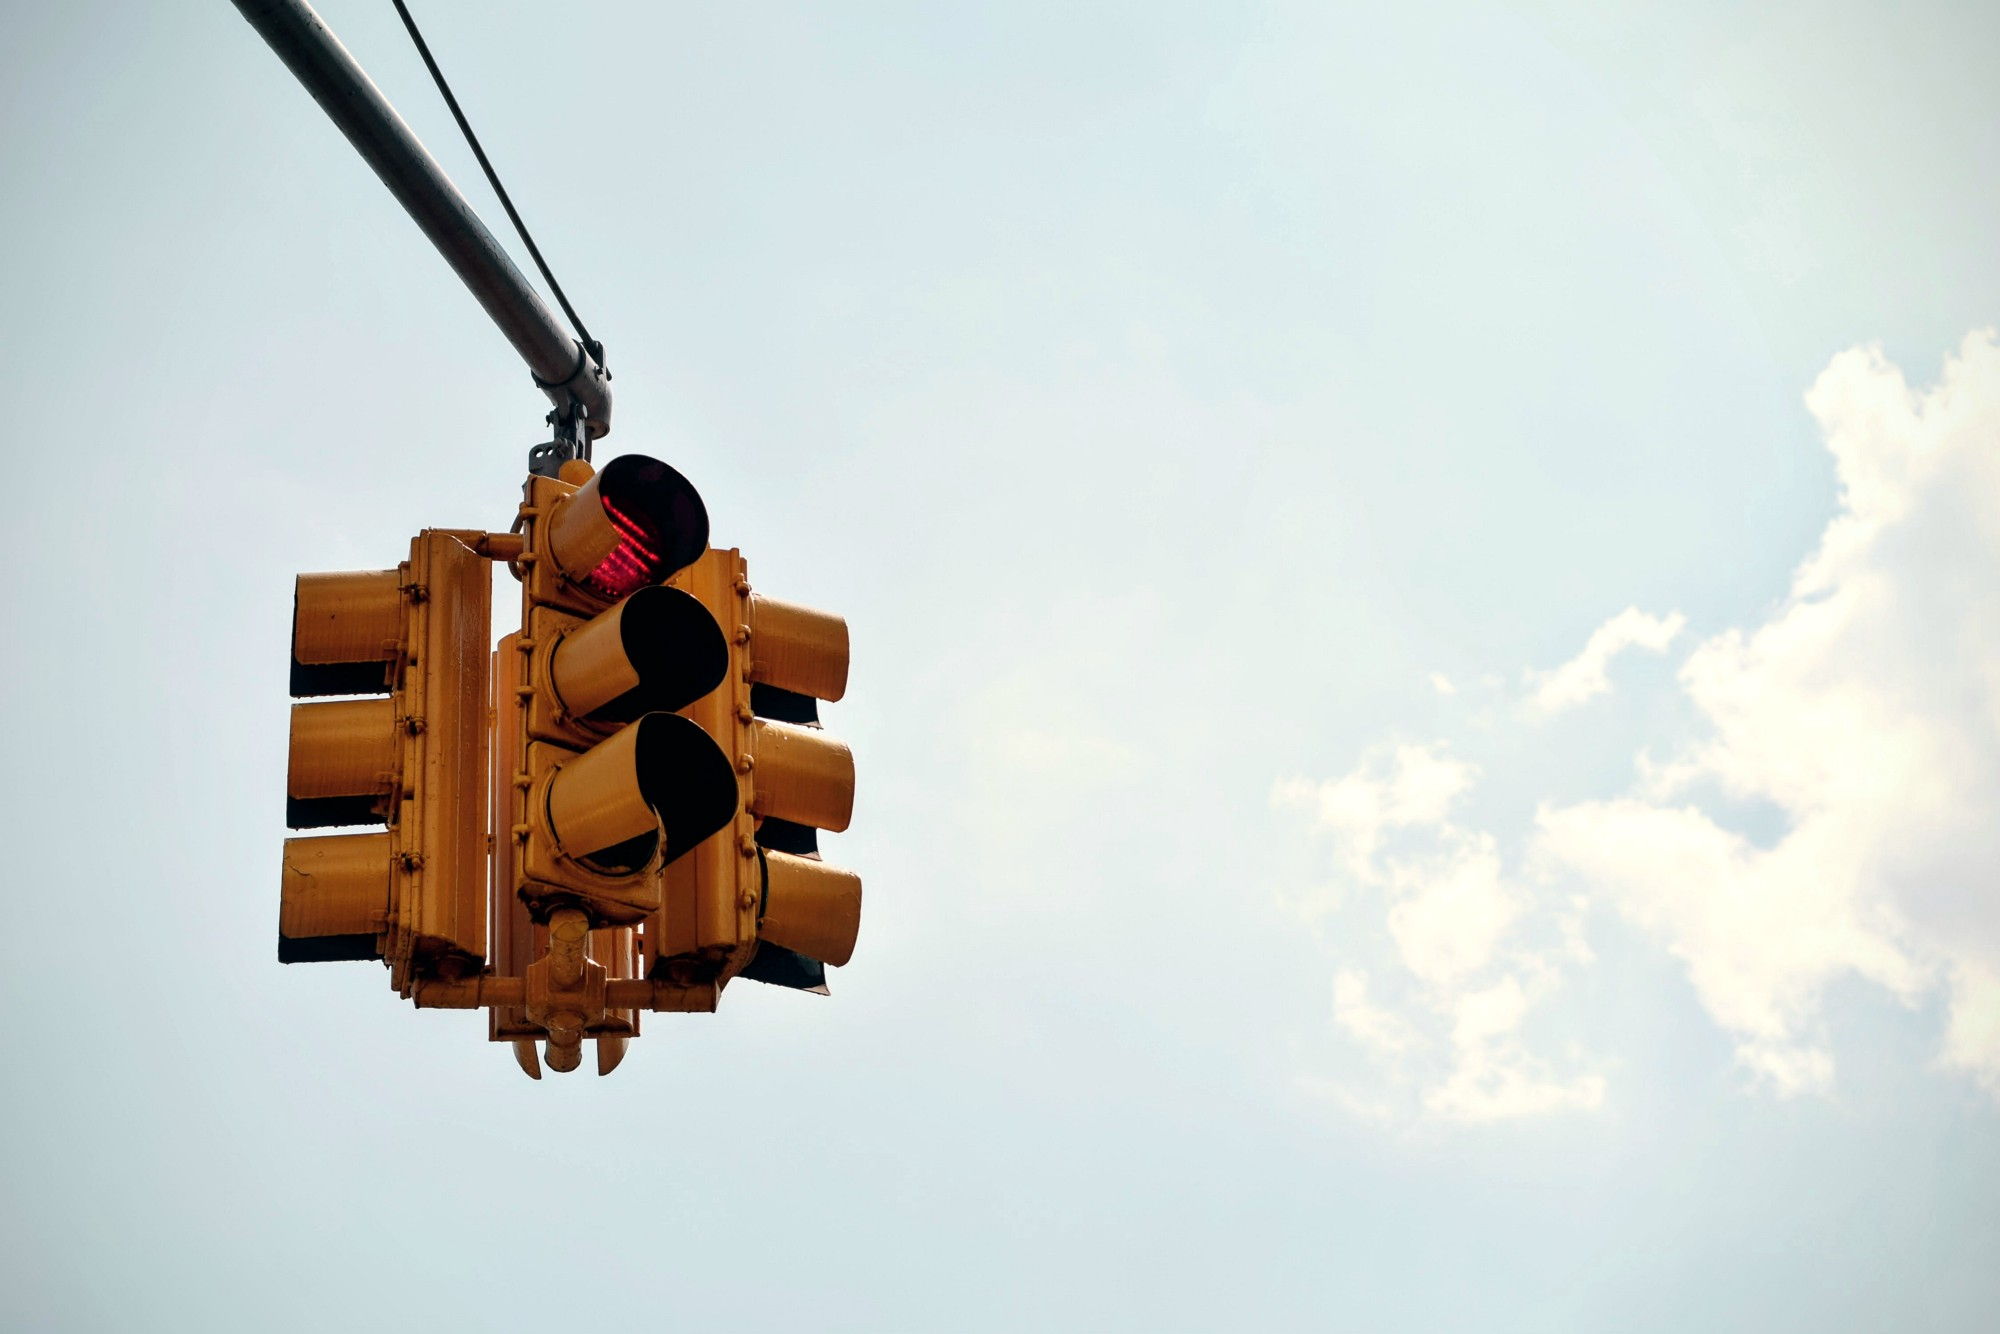 Recognizing Traffic Lights With Deep Learning